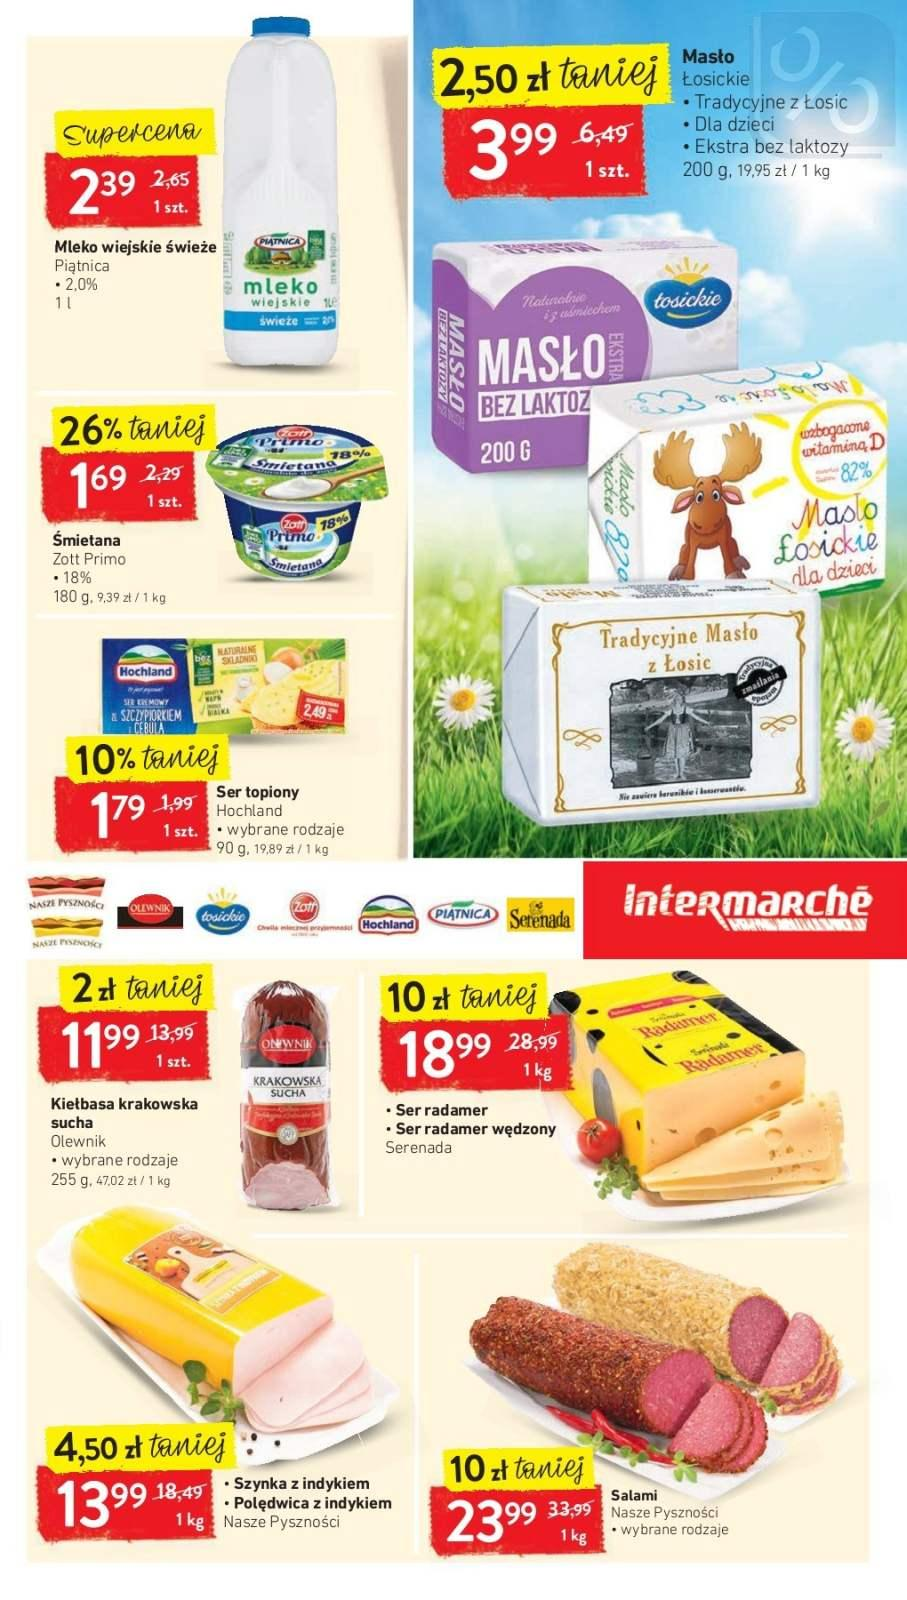 Gazetka promocyjna Intermarche do 15/07/2019 str.10